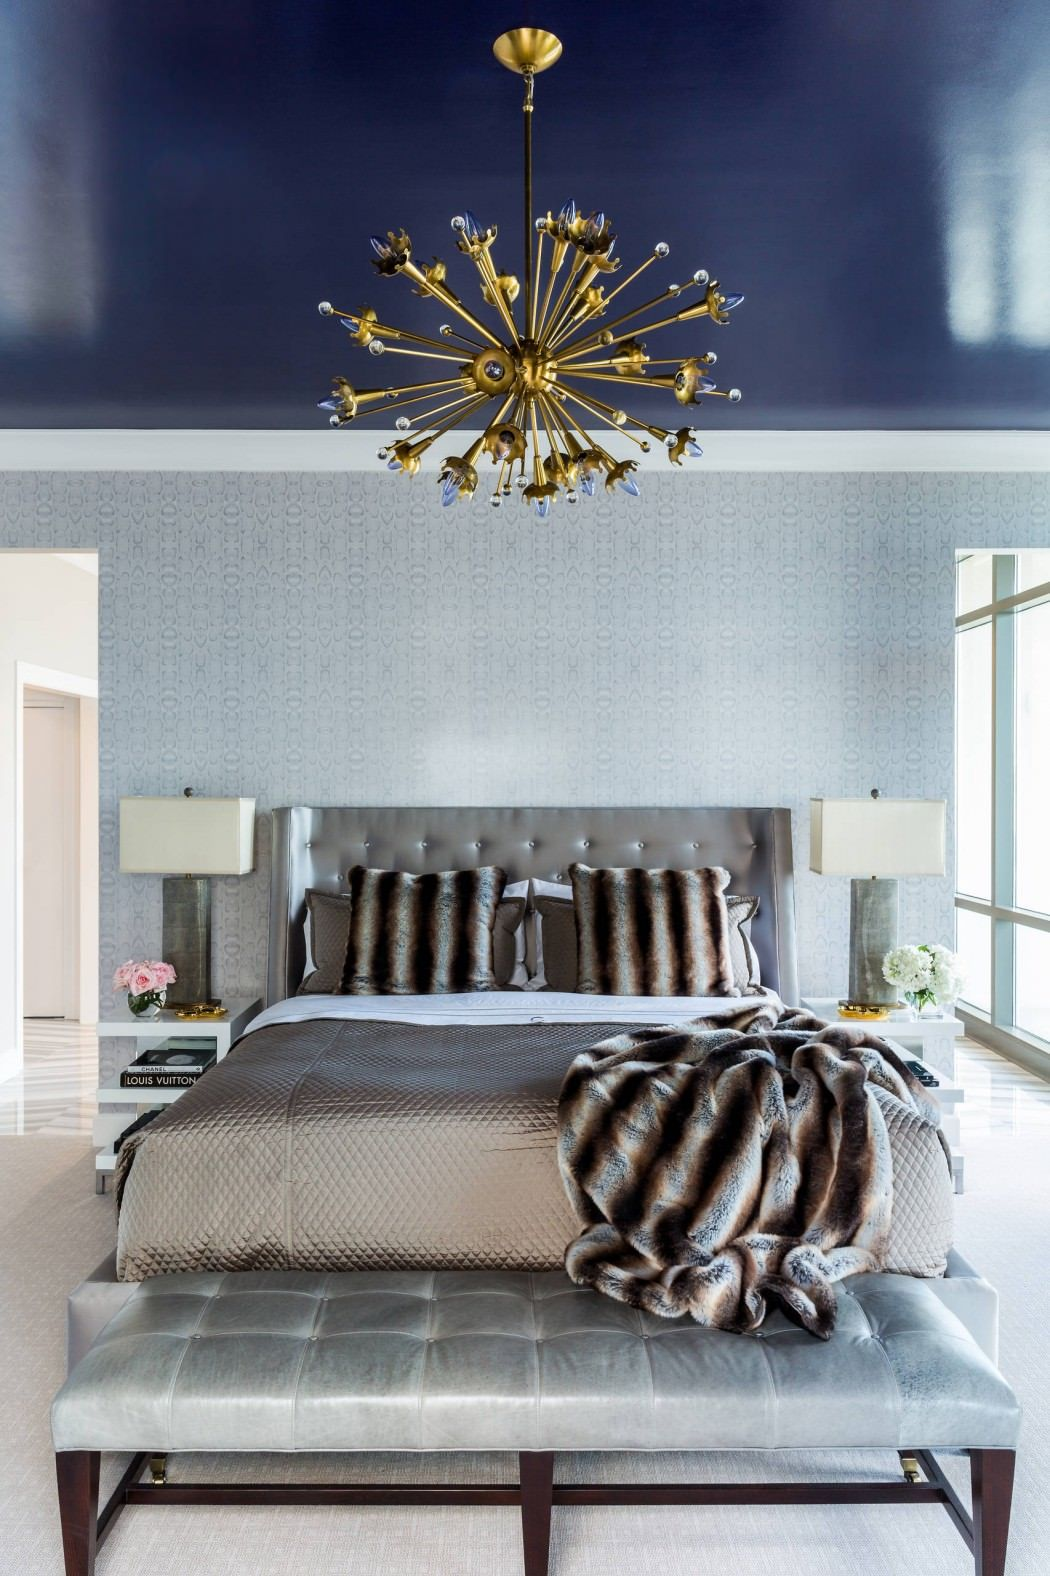 Fabulous ceiling feature... #interiordesign #inspiration #bedroom #lighting #ceiling #color #navy